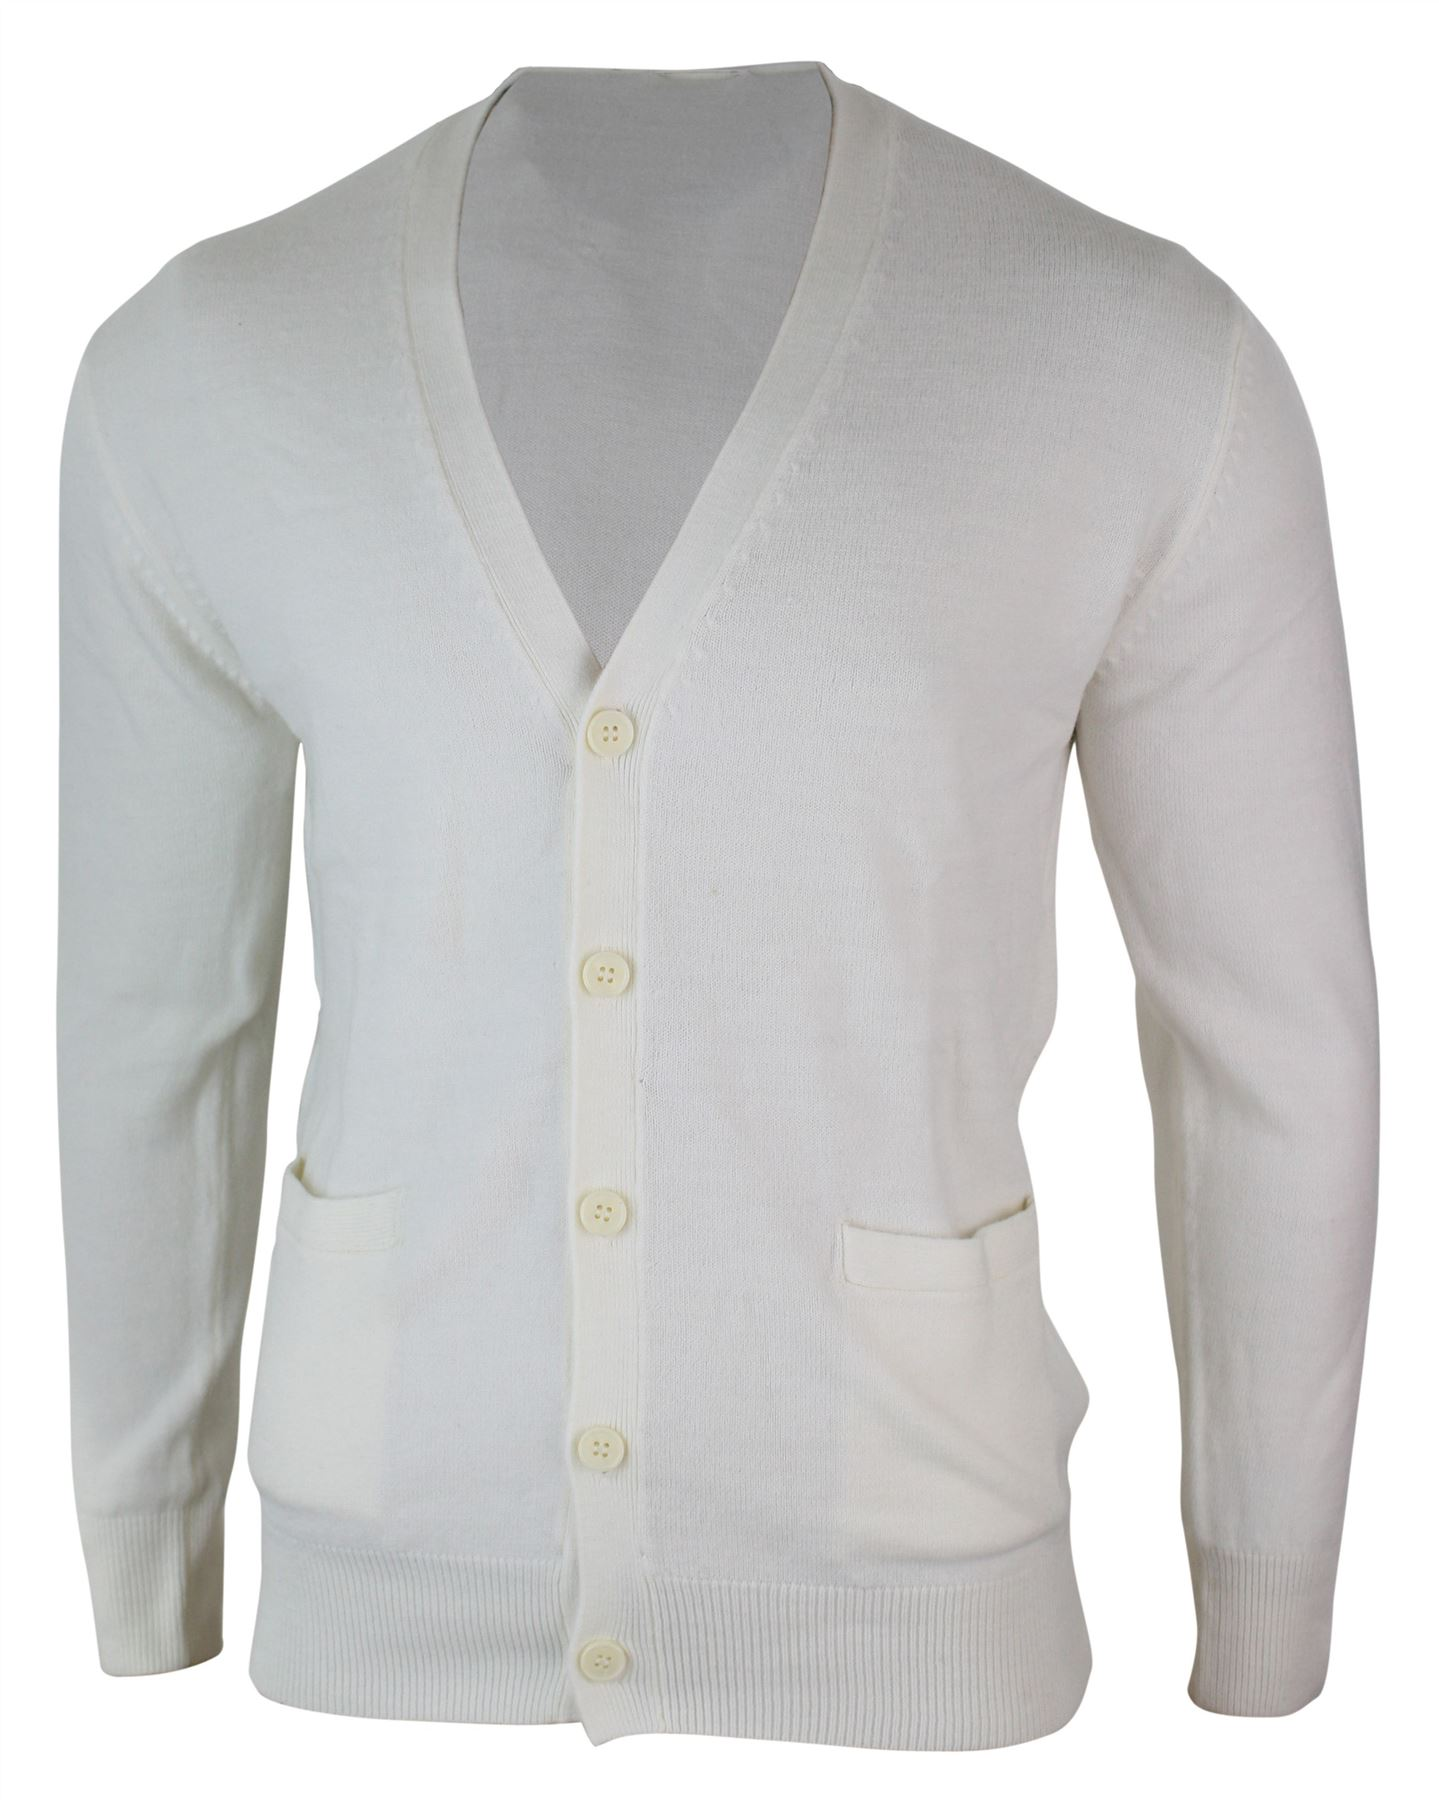 Mens Slim Fit Button Knitted Light Cardigan Jumper Top Smart Casual